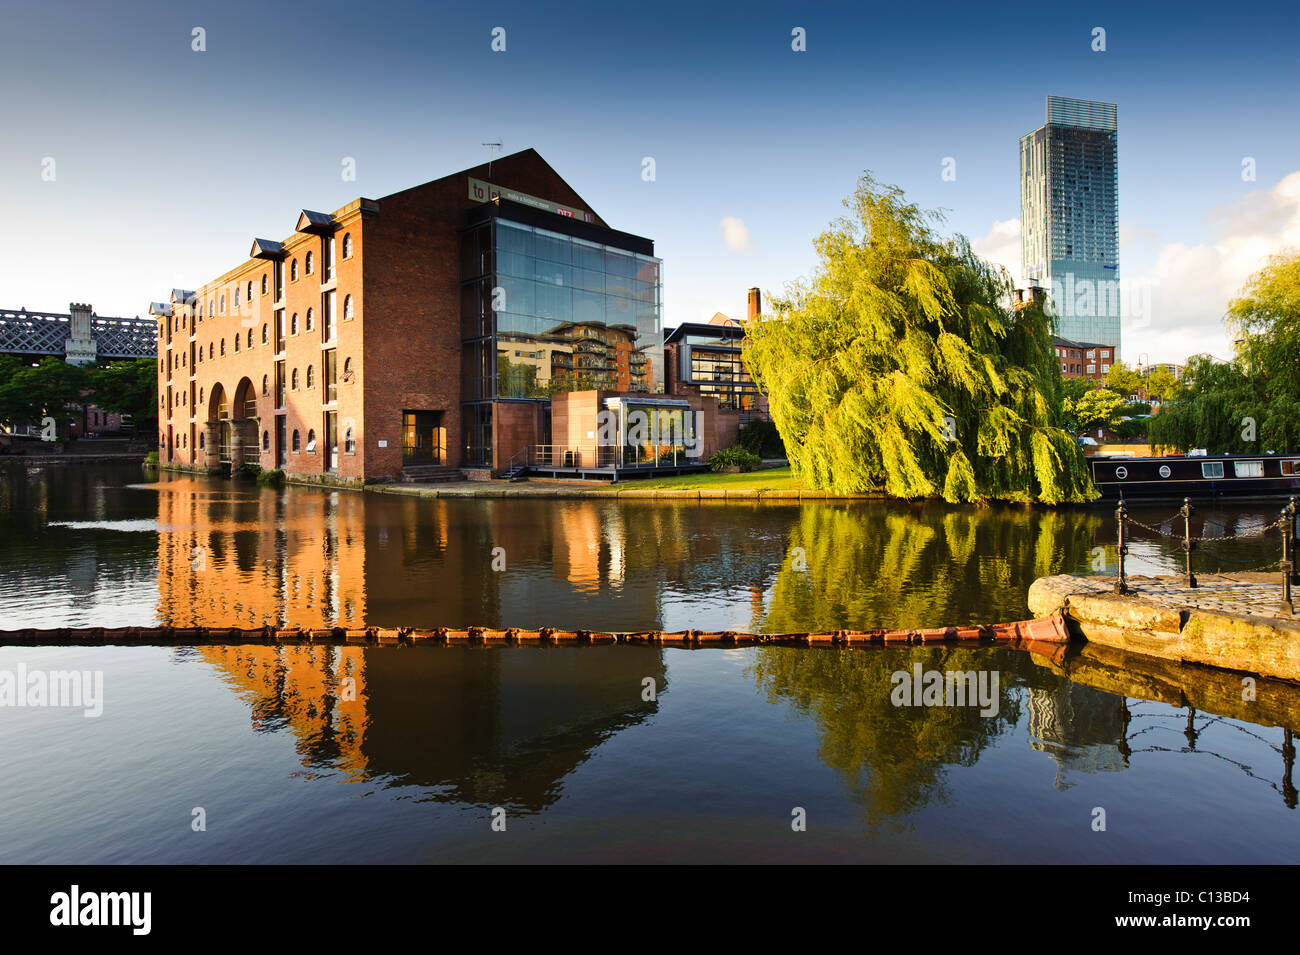 Castlefield canal area Manchester with beetham hilton in background - Stock Image